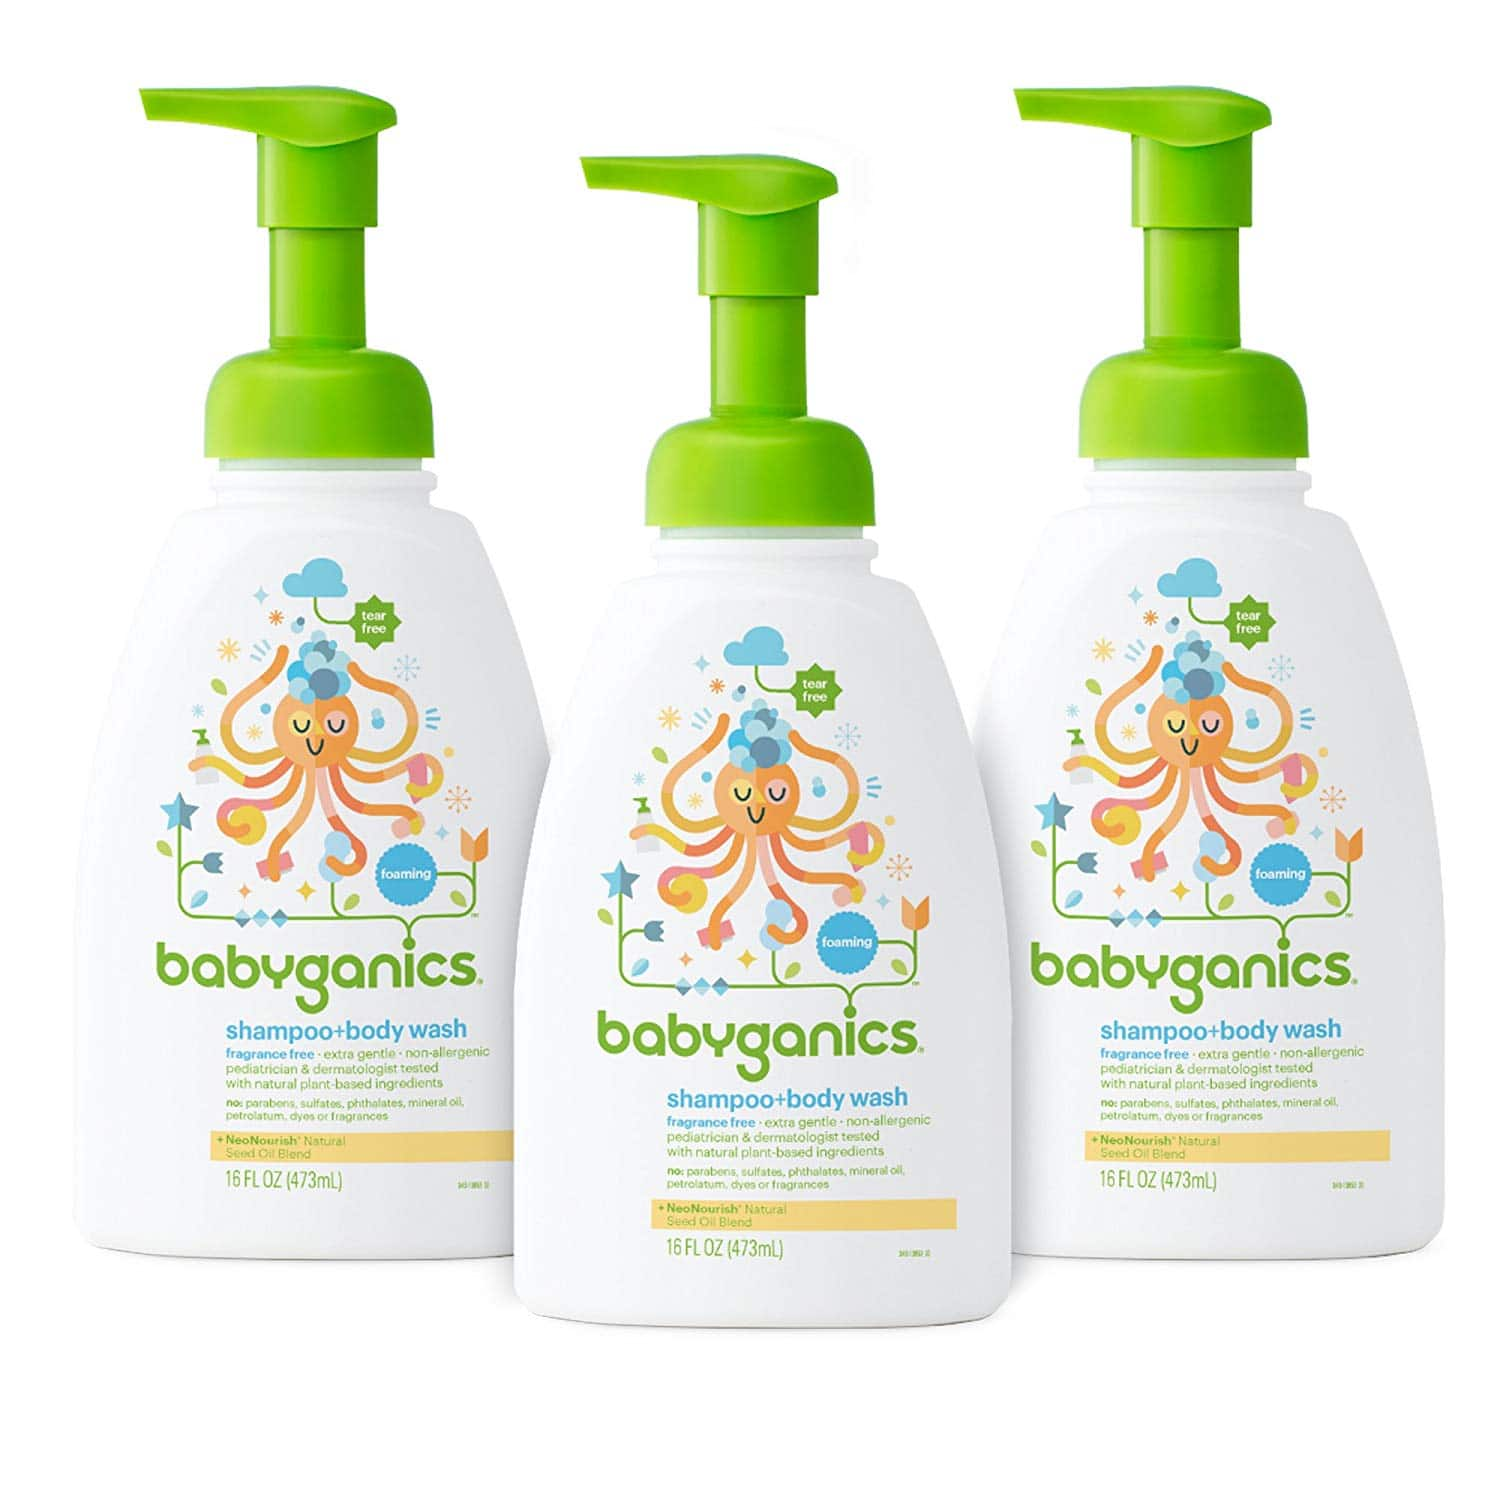 Babyganics Baby Shampoo and Body Wash, Fragrance Free, 3 Pack [Standard Packaging, Fragrance Free] $15.2